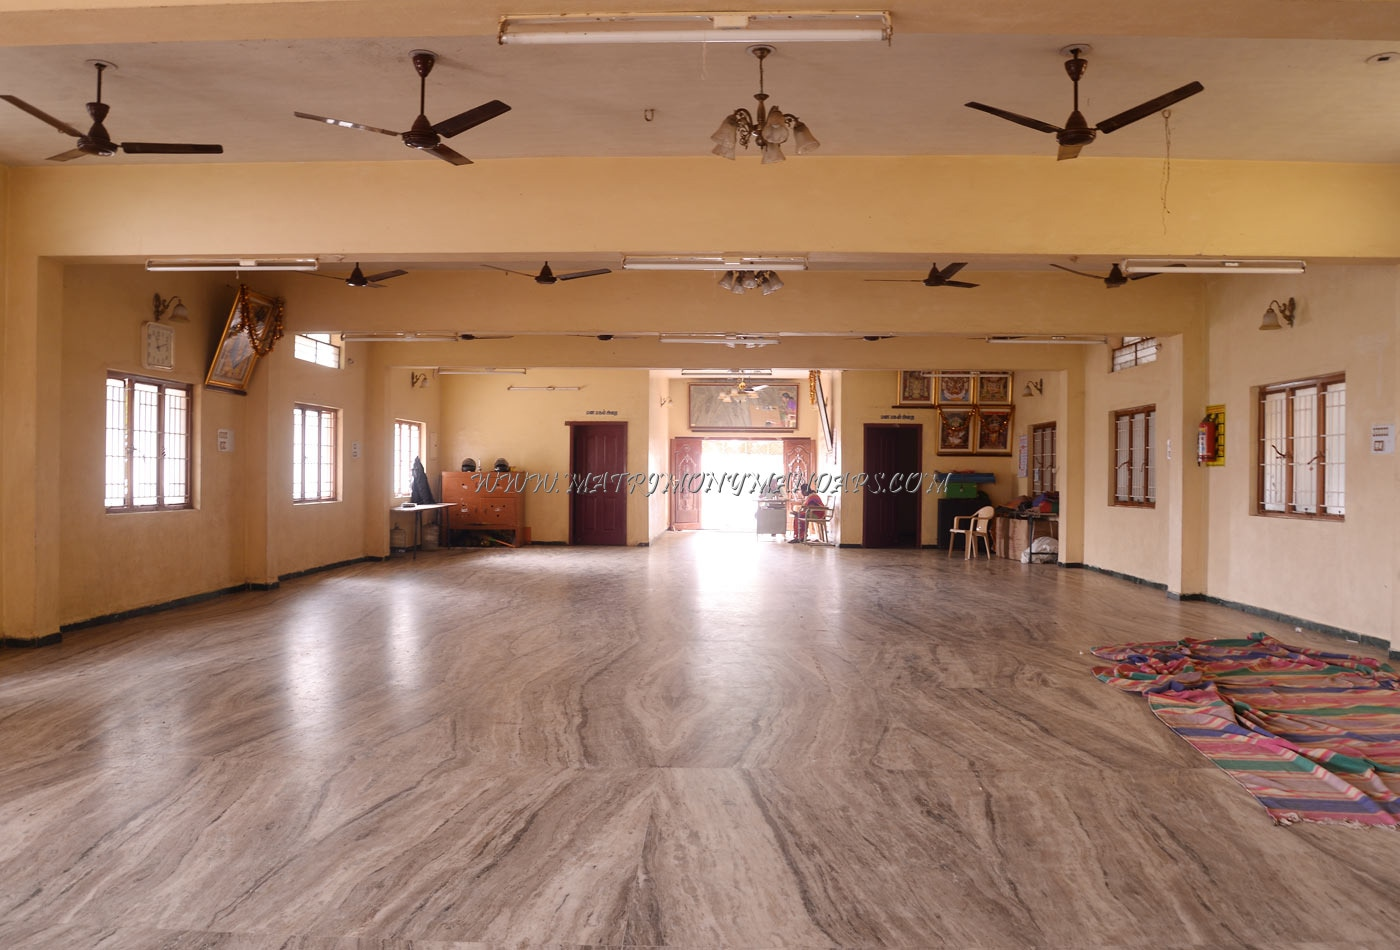 Find the availability of the Sri Ranga Mahal in Maruthamalai Road, Coimbatore and avail special offers